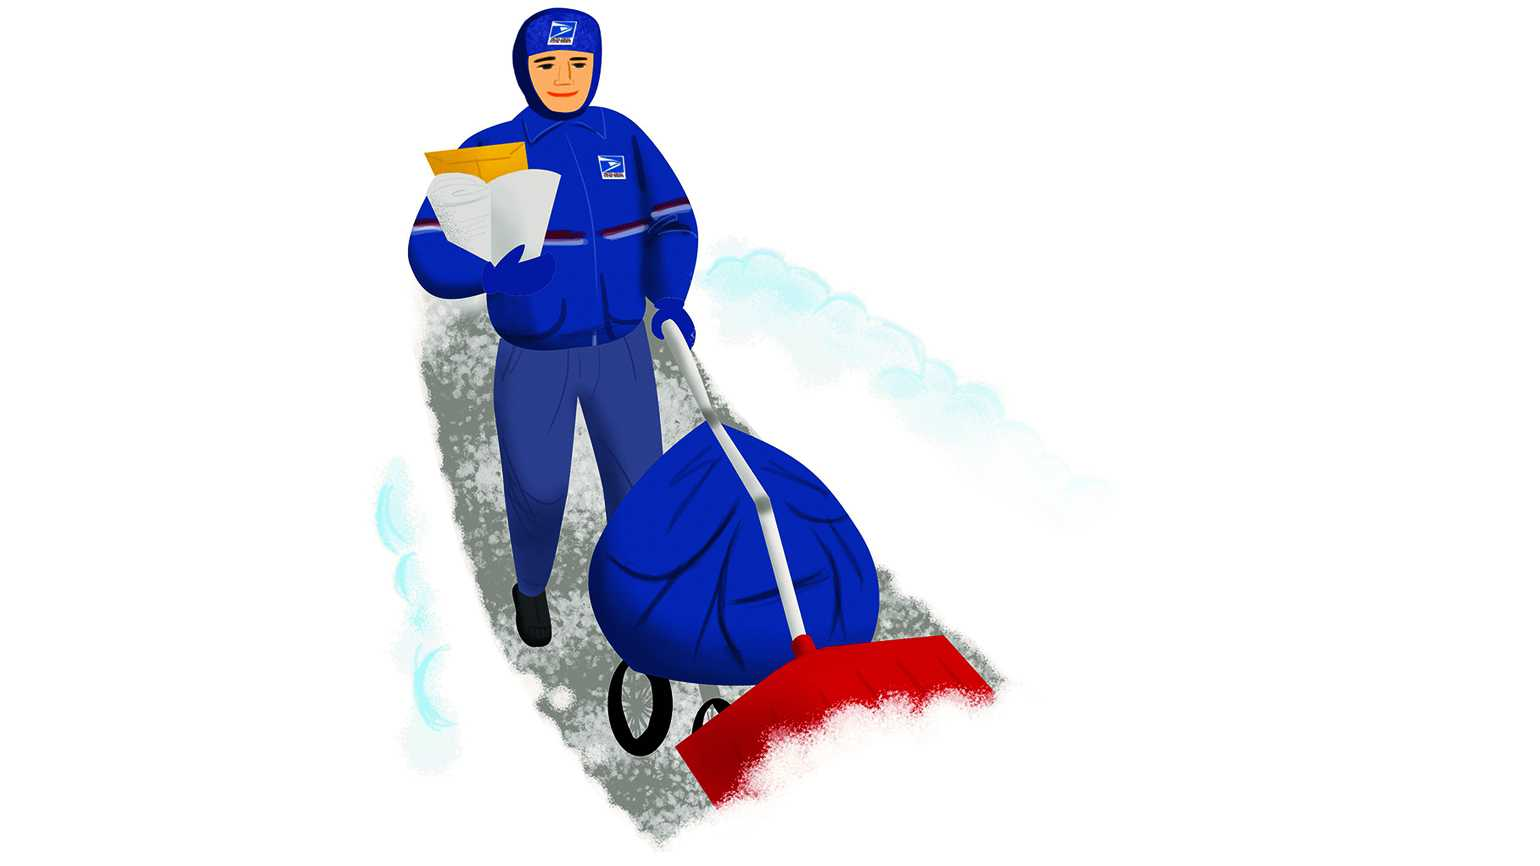 An illustration of a warmly dressed mail carrier shoveling the sidewalk with envelopes under his arm.